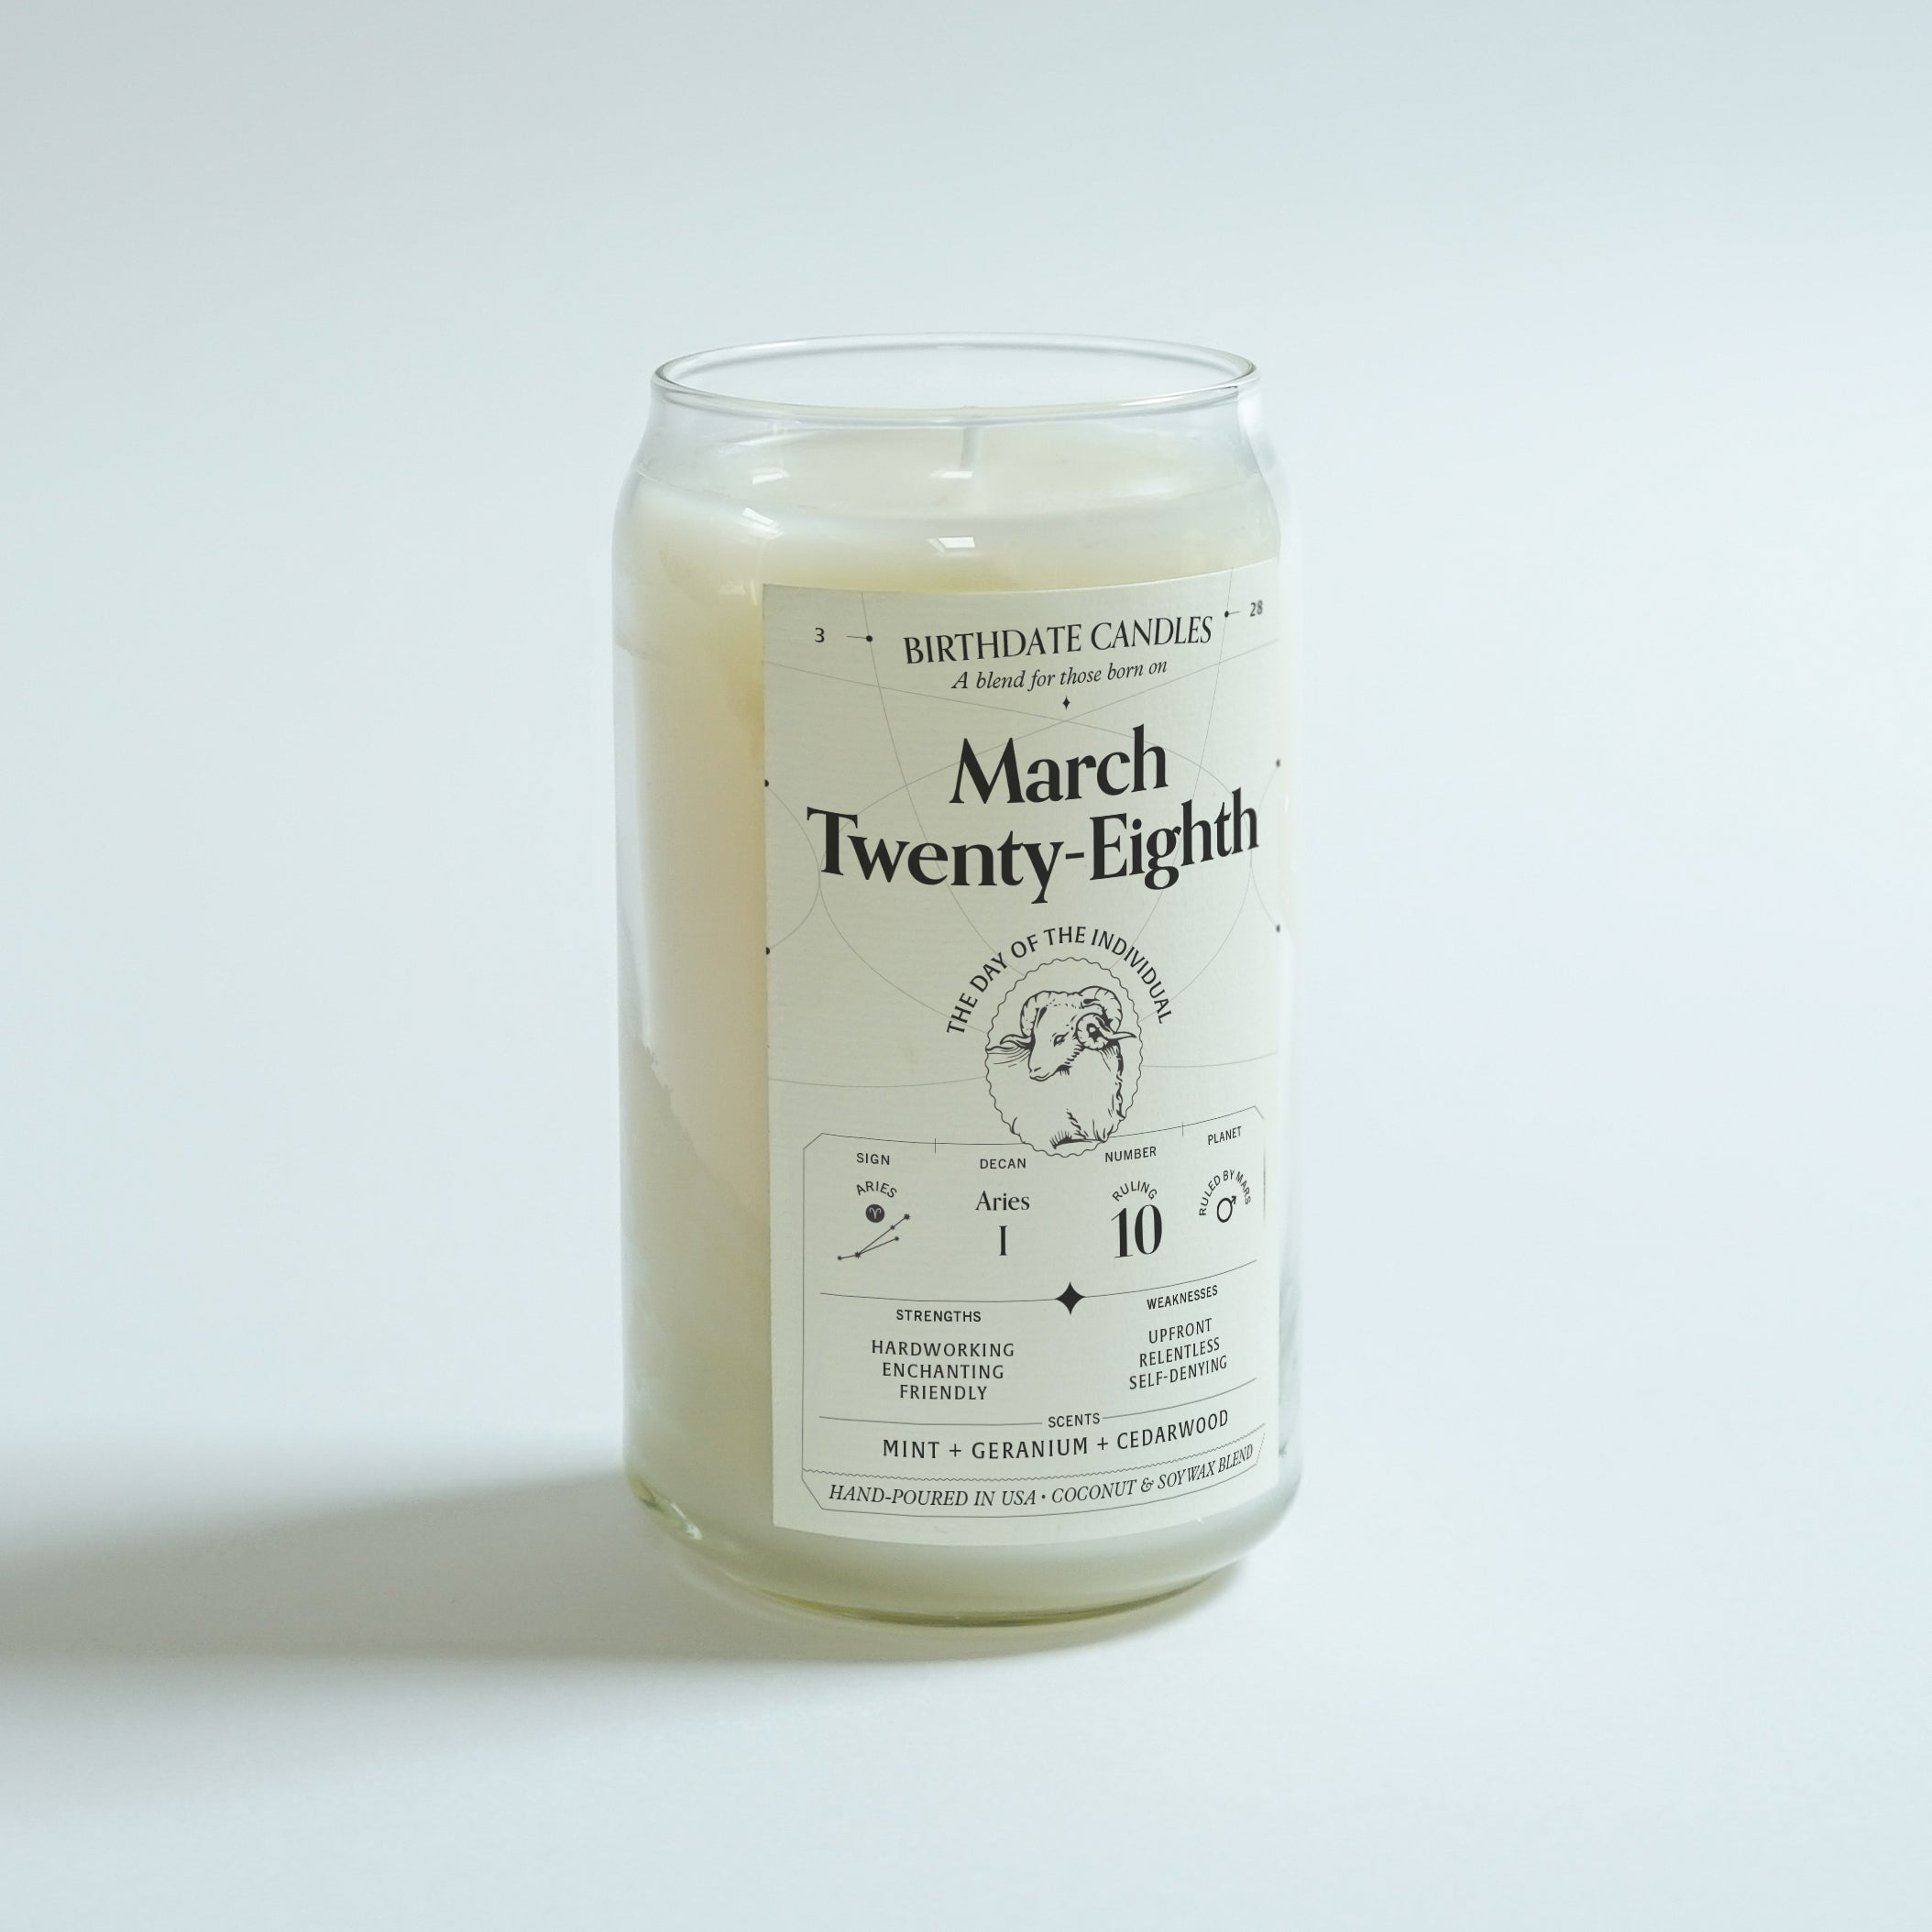 The March Twenty-Eighth Candle